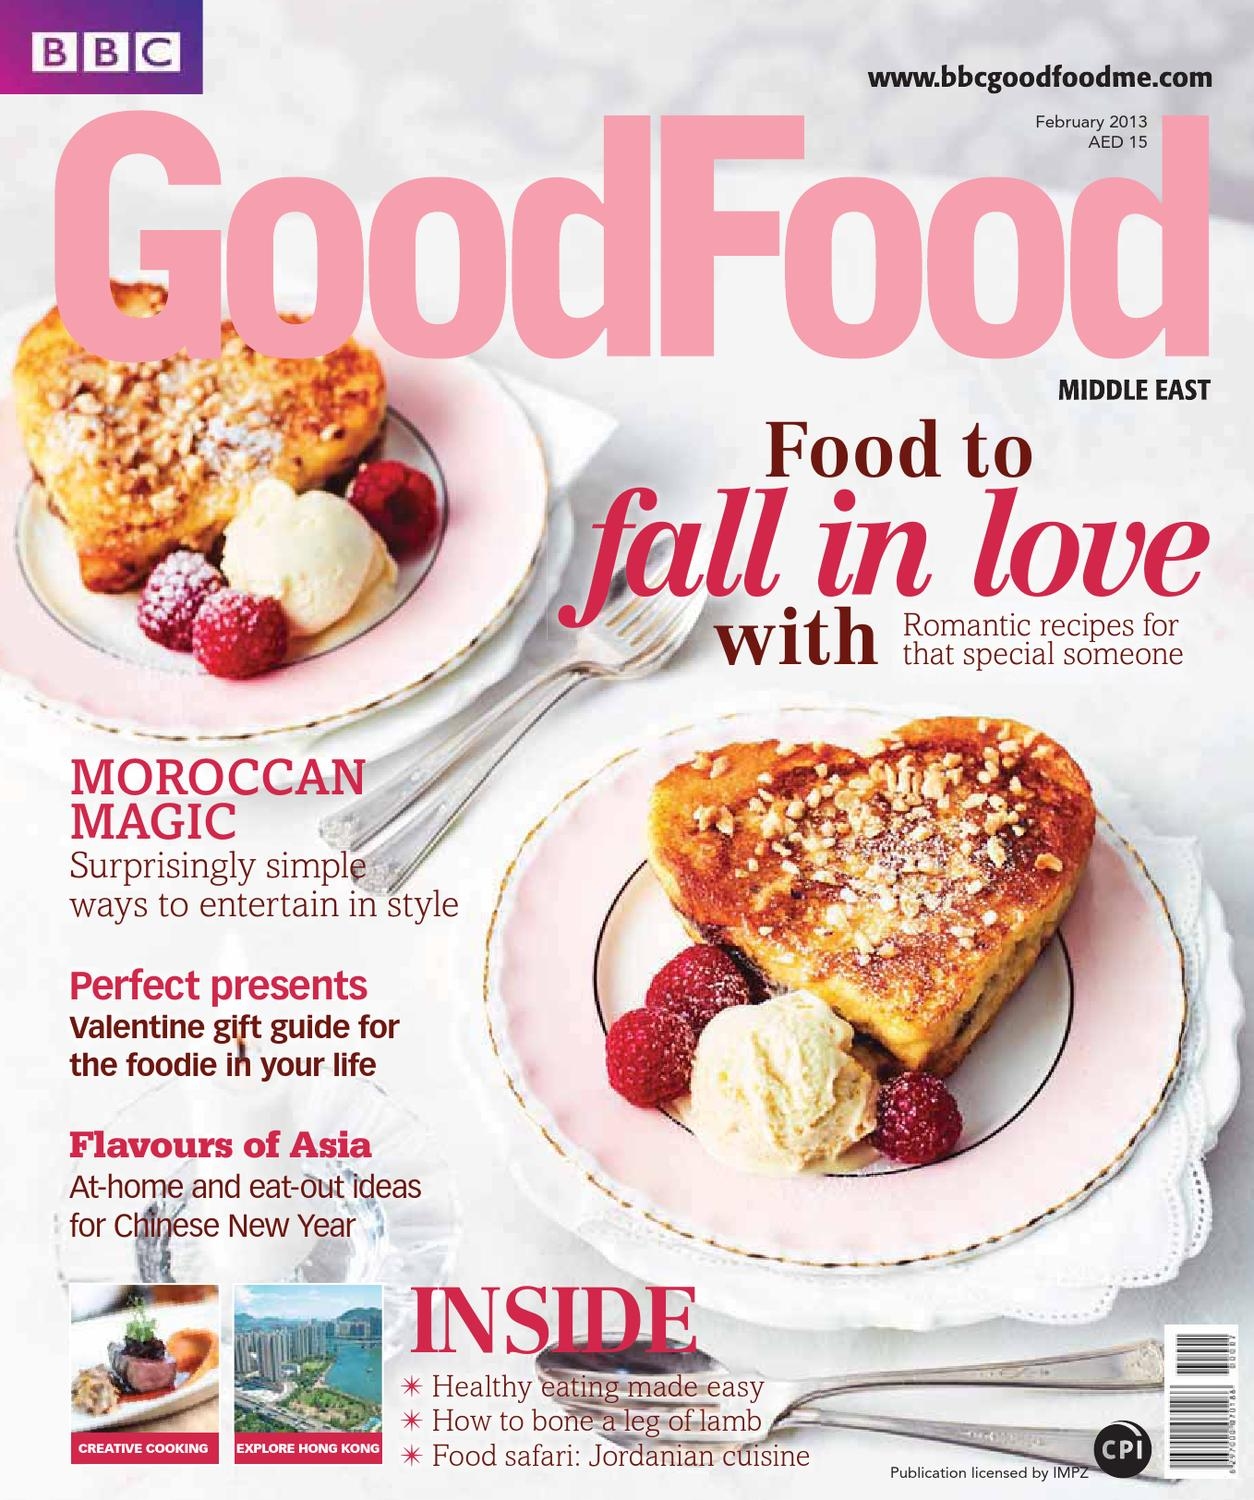 Bbc good food middle east magazine february 2013 by bbc good bbc good food middle east magazine february 2013 by bbc good food me issuu forumfinder Gallery